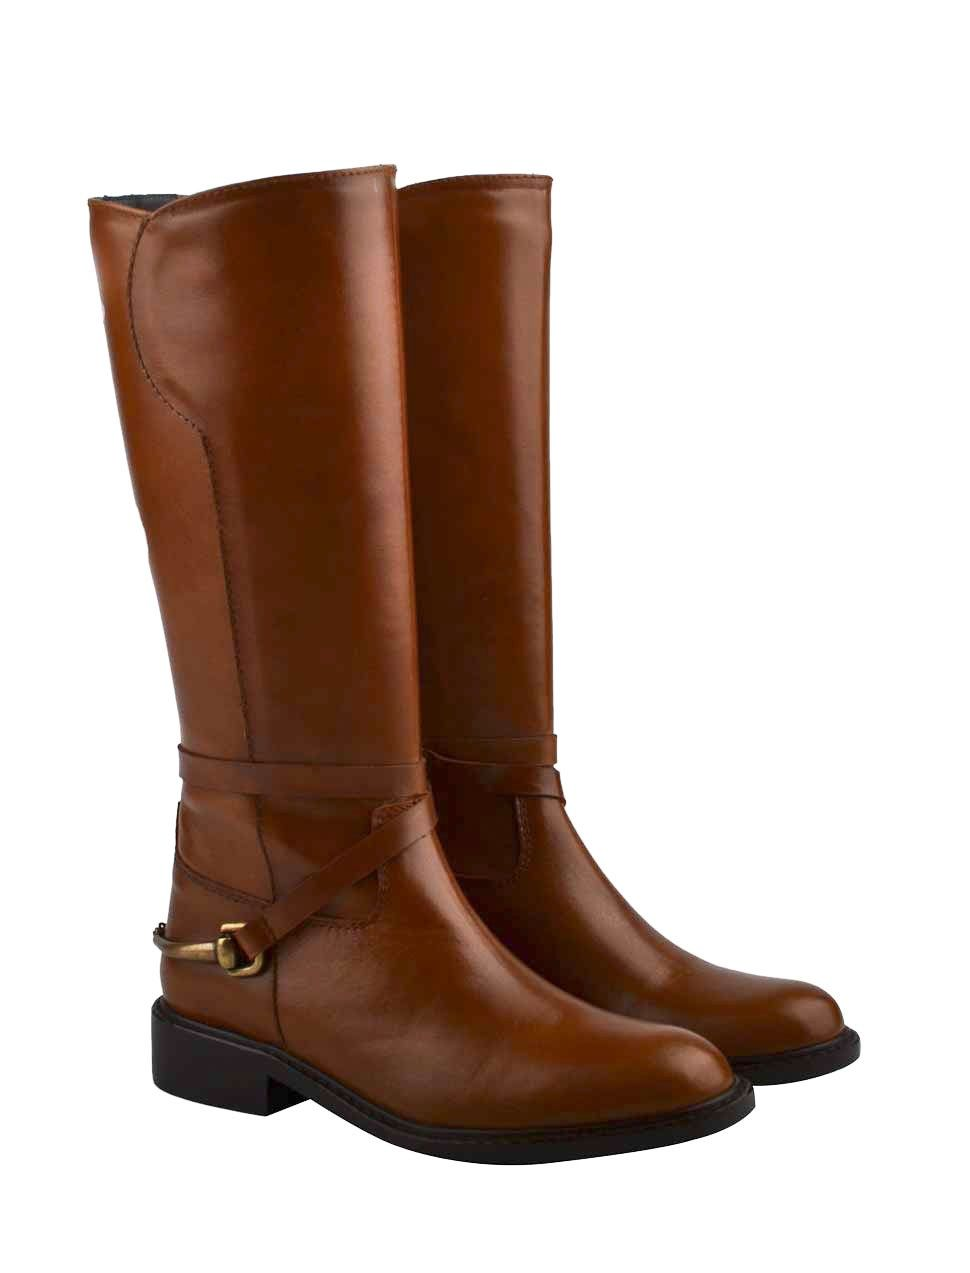 46187b6bd Cognac leather girls boots horseriding model from Eli Zapatos Náuticos